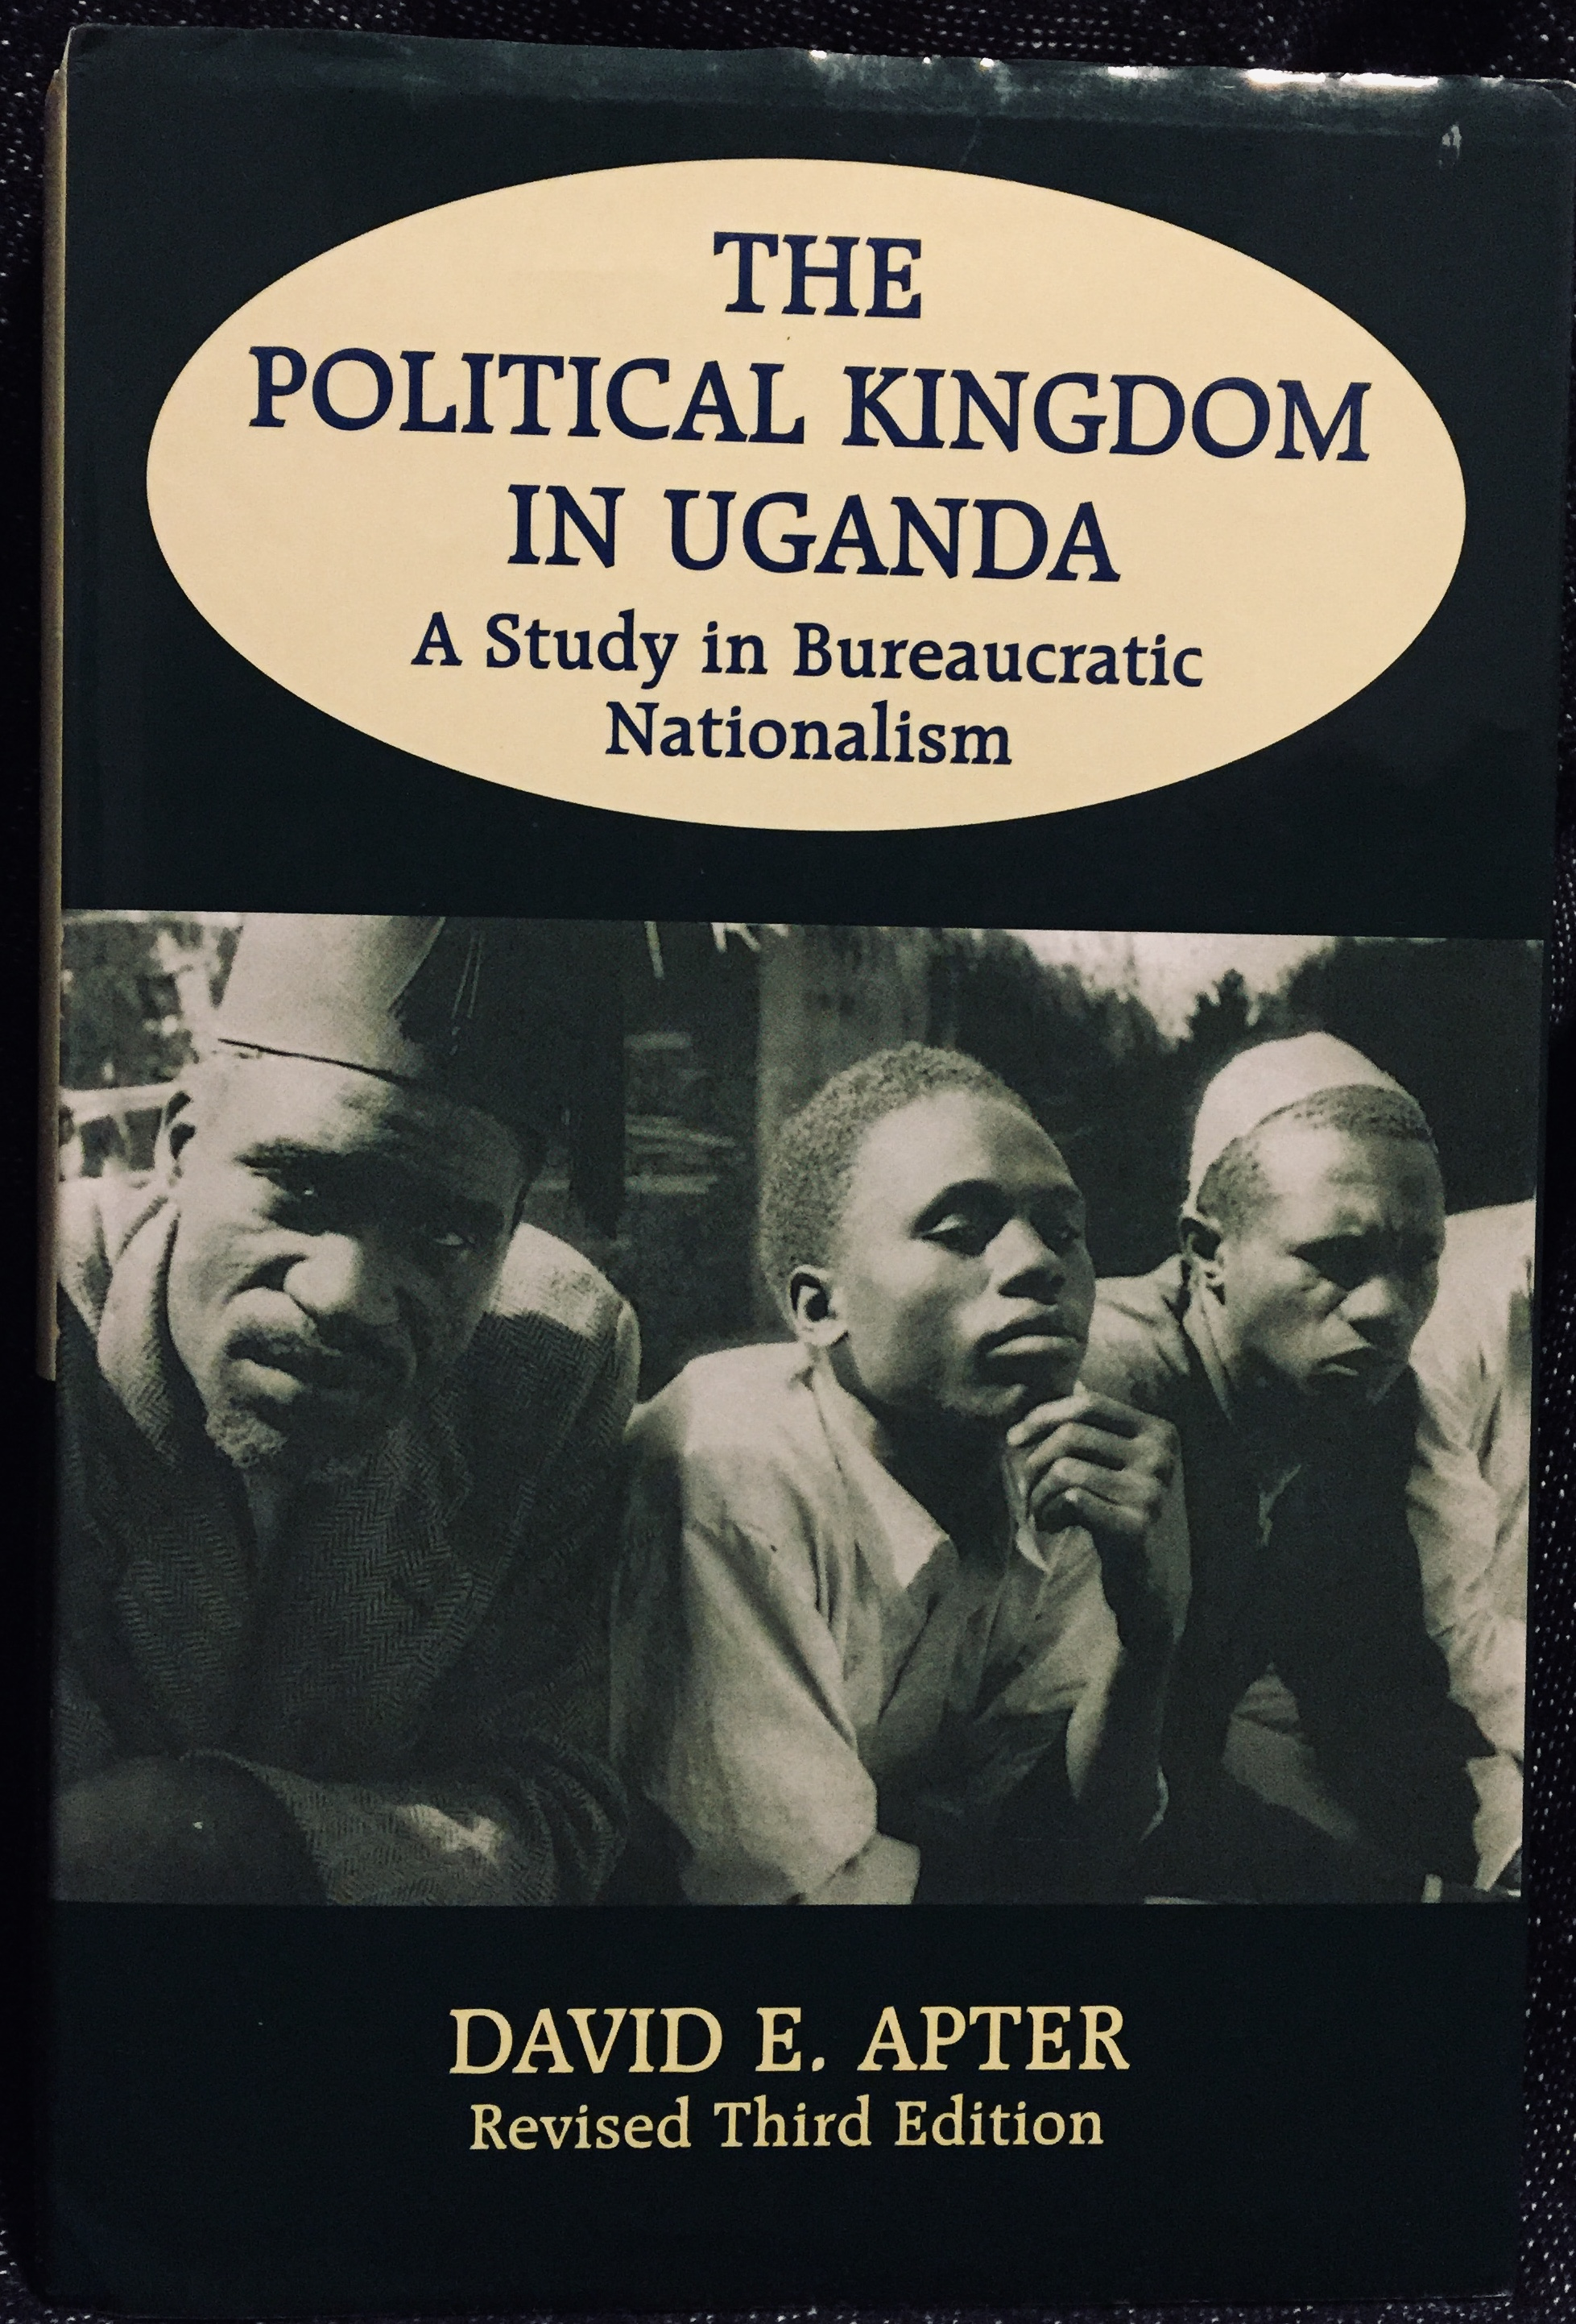 The Political Kingdom in Uganda: A Study in Bureaucratic Nationalism – By David E. Apter (Revised Third Edition, 1997)